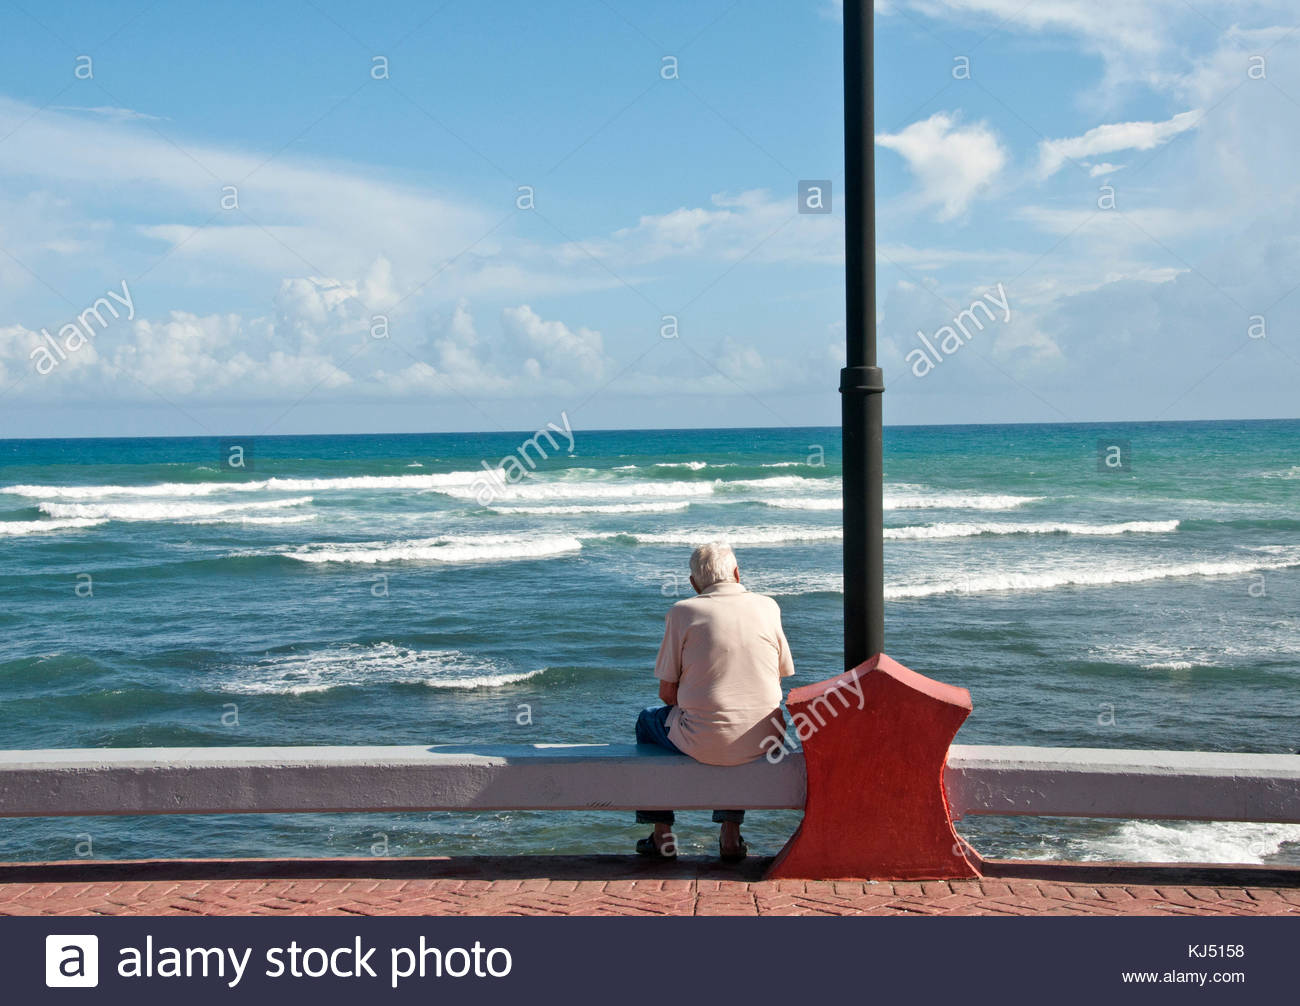 the old Man and the Sea - Stock Image